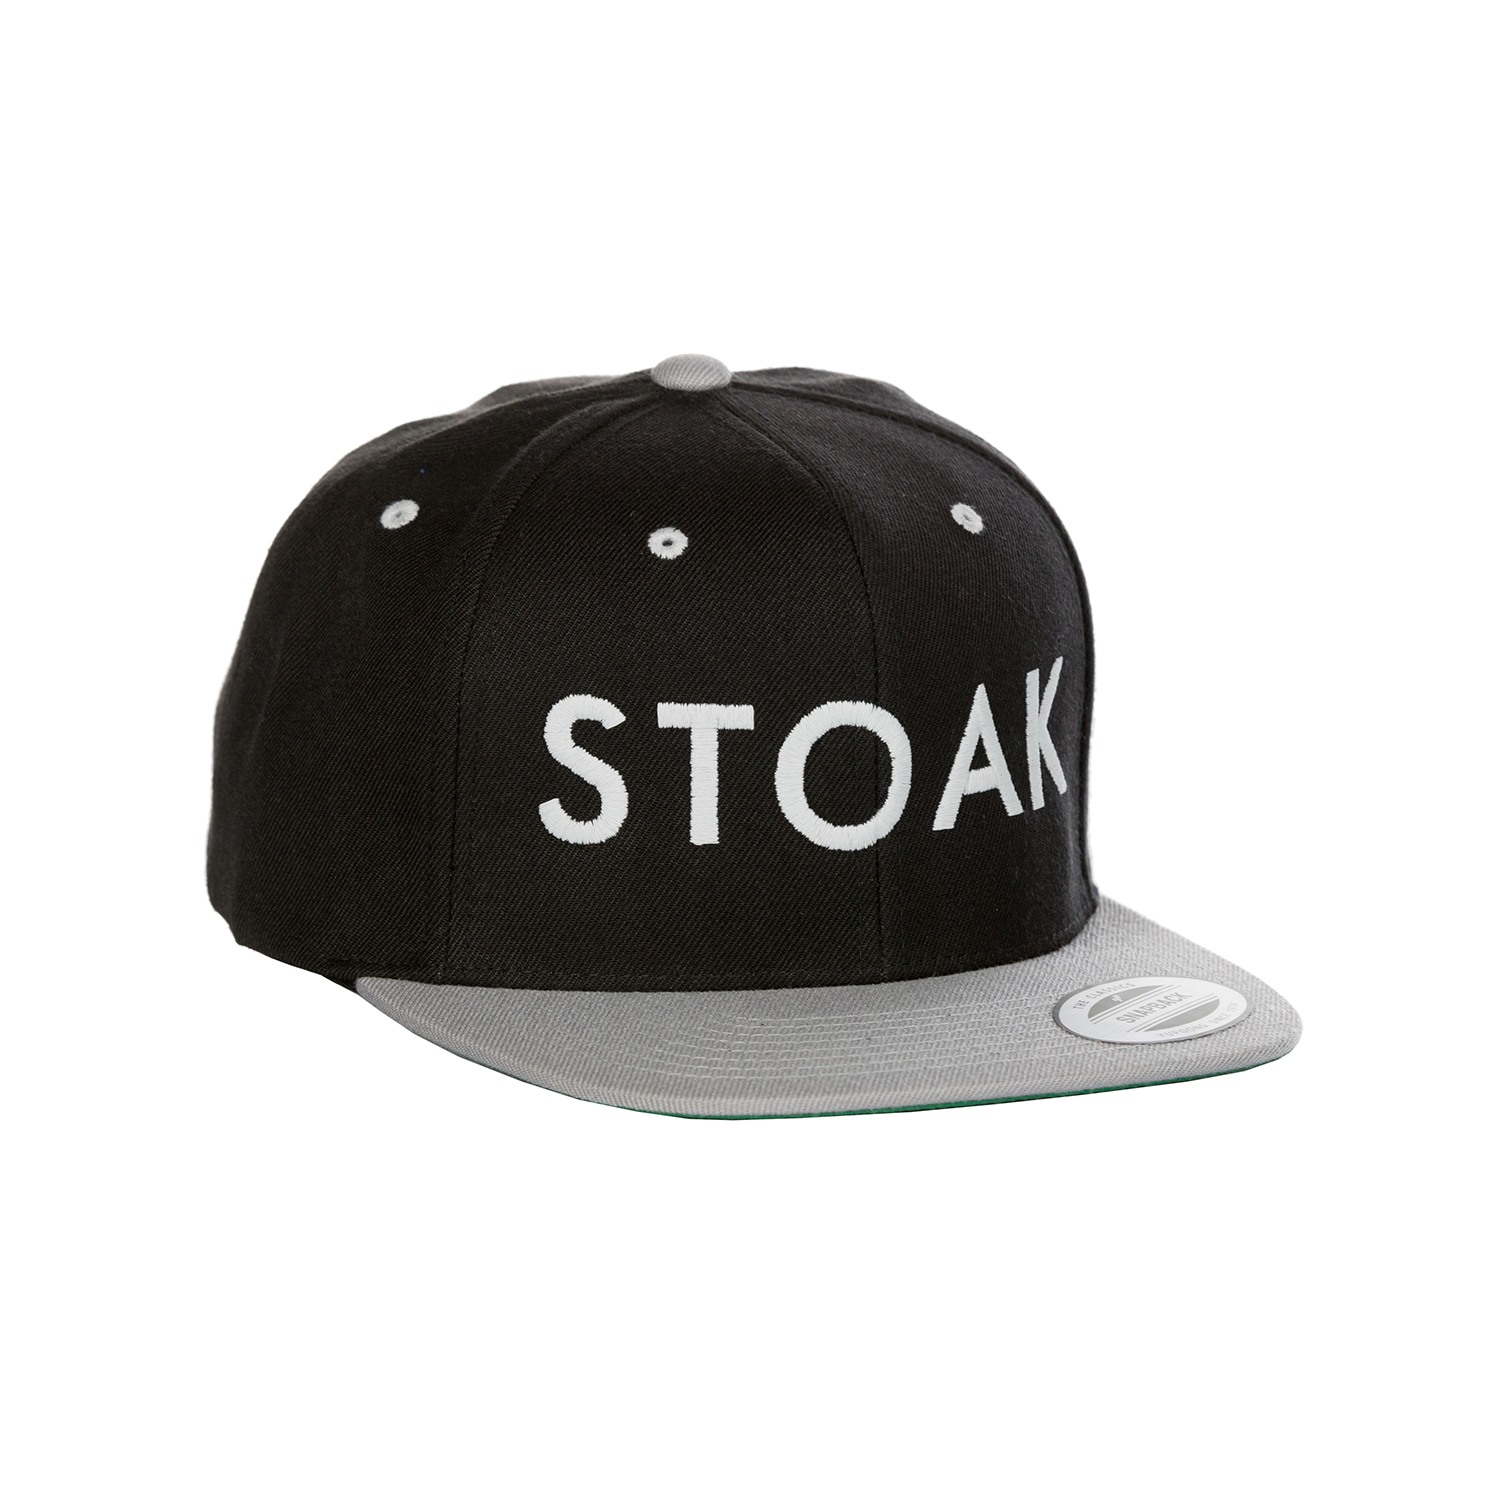 STOAK BLACK ROCK Cap